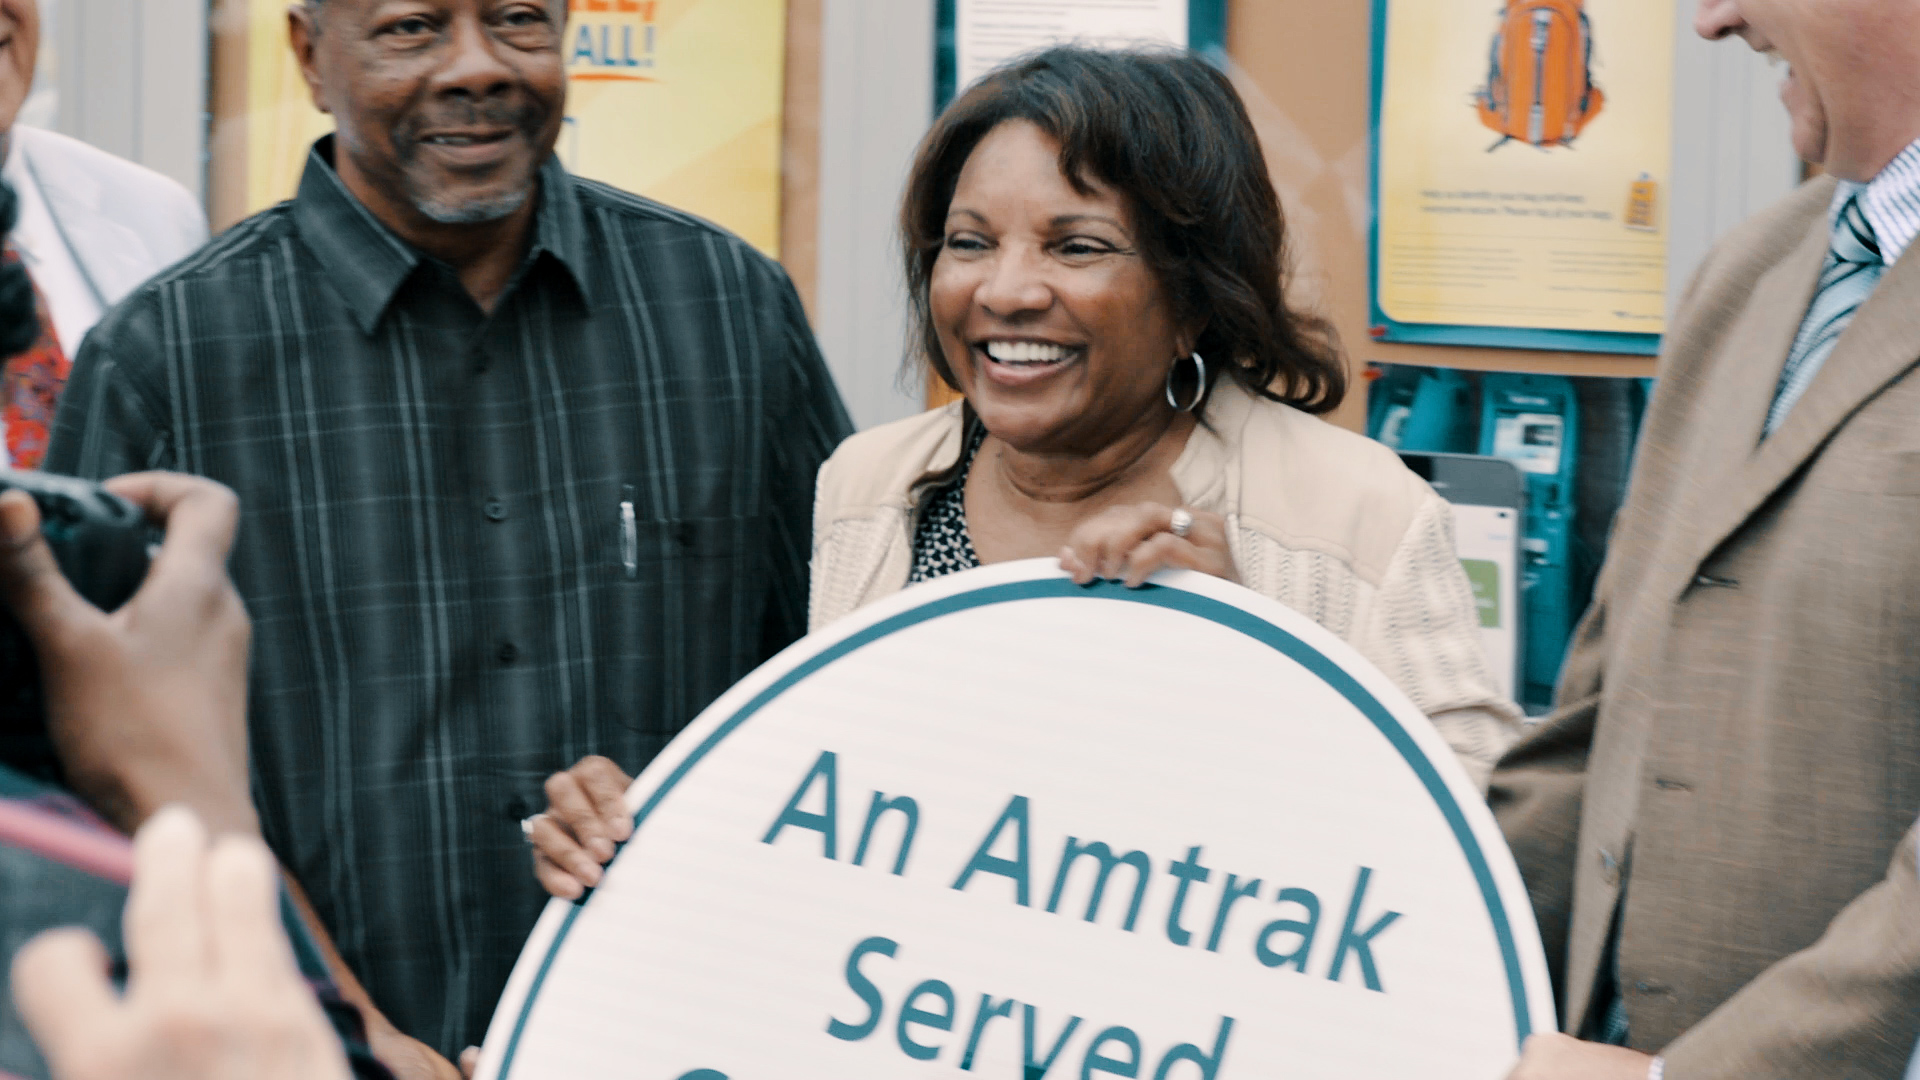 Photo of woman holding Amtrak sign